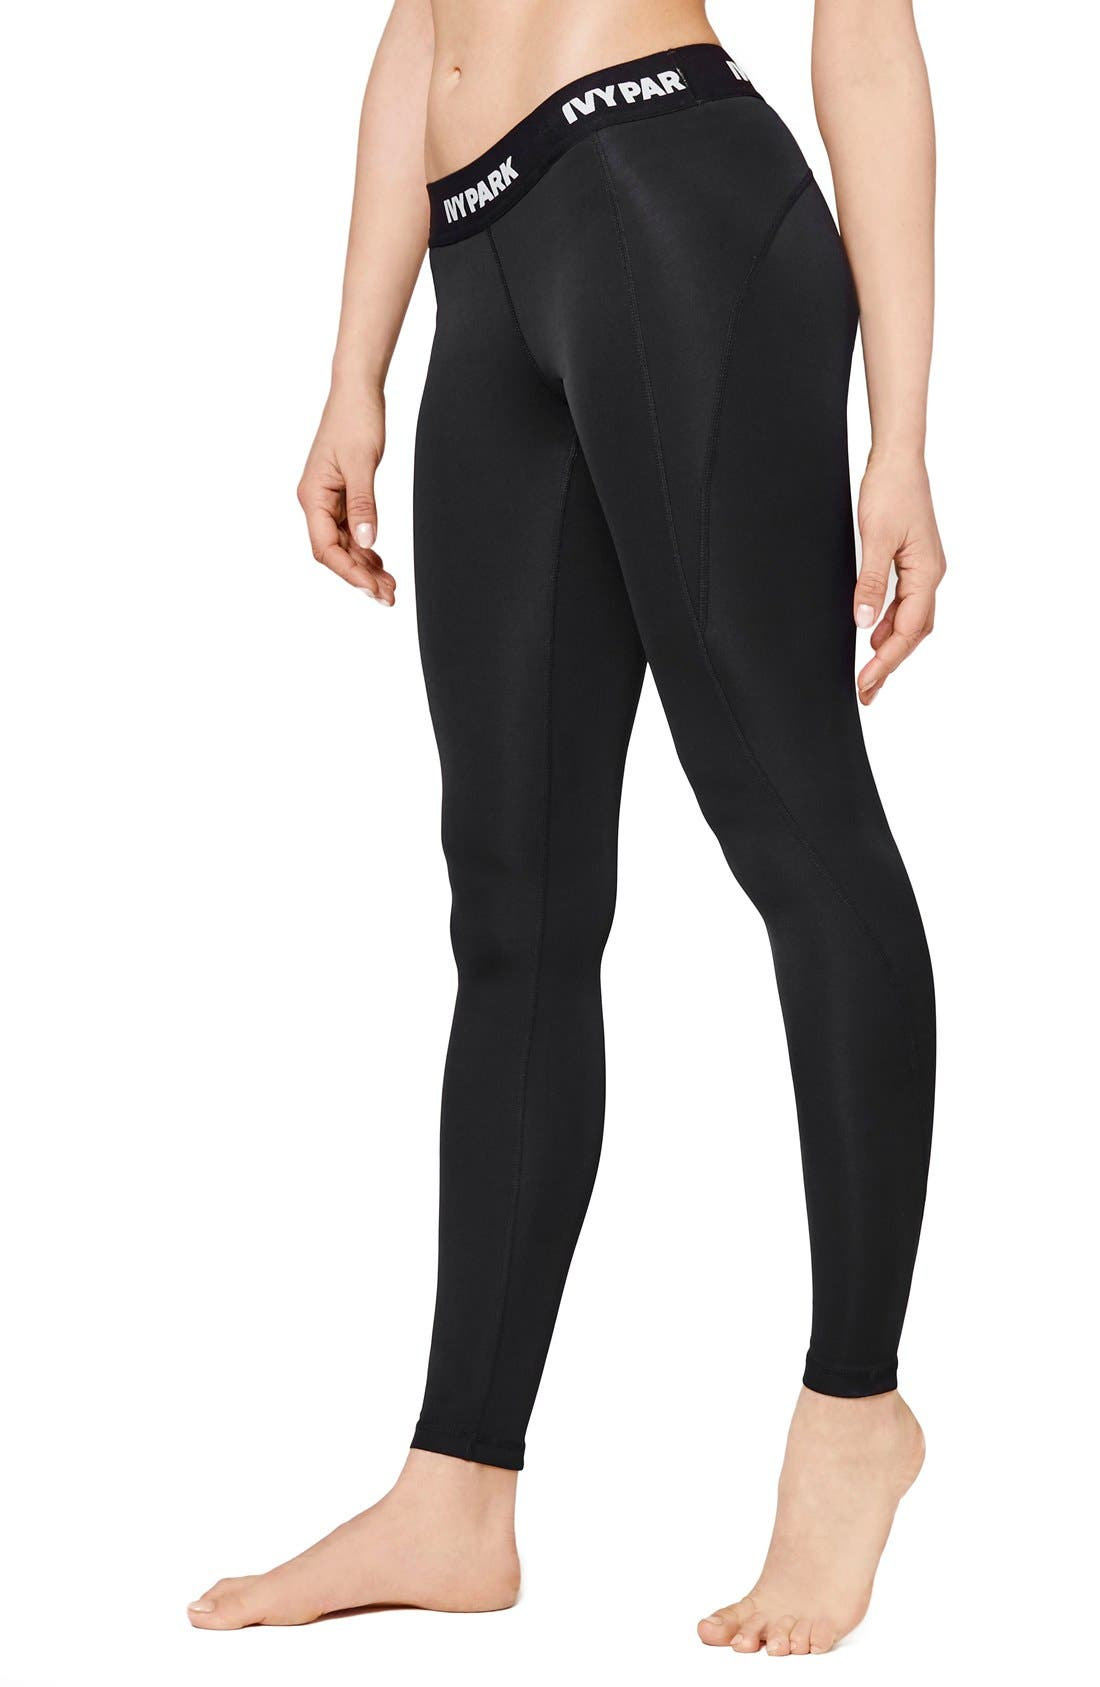 IVY PARK 'I' Low Rise Full Length Leggings